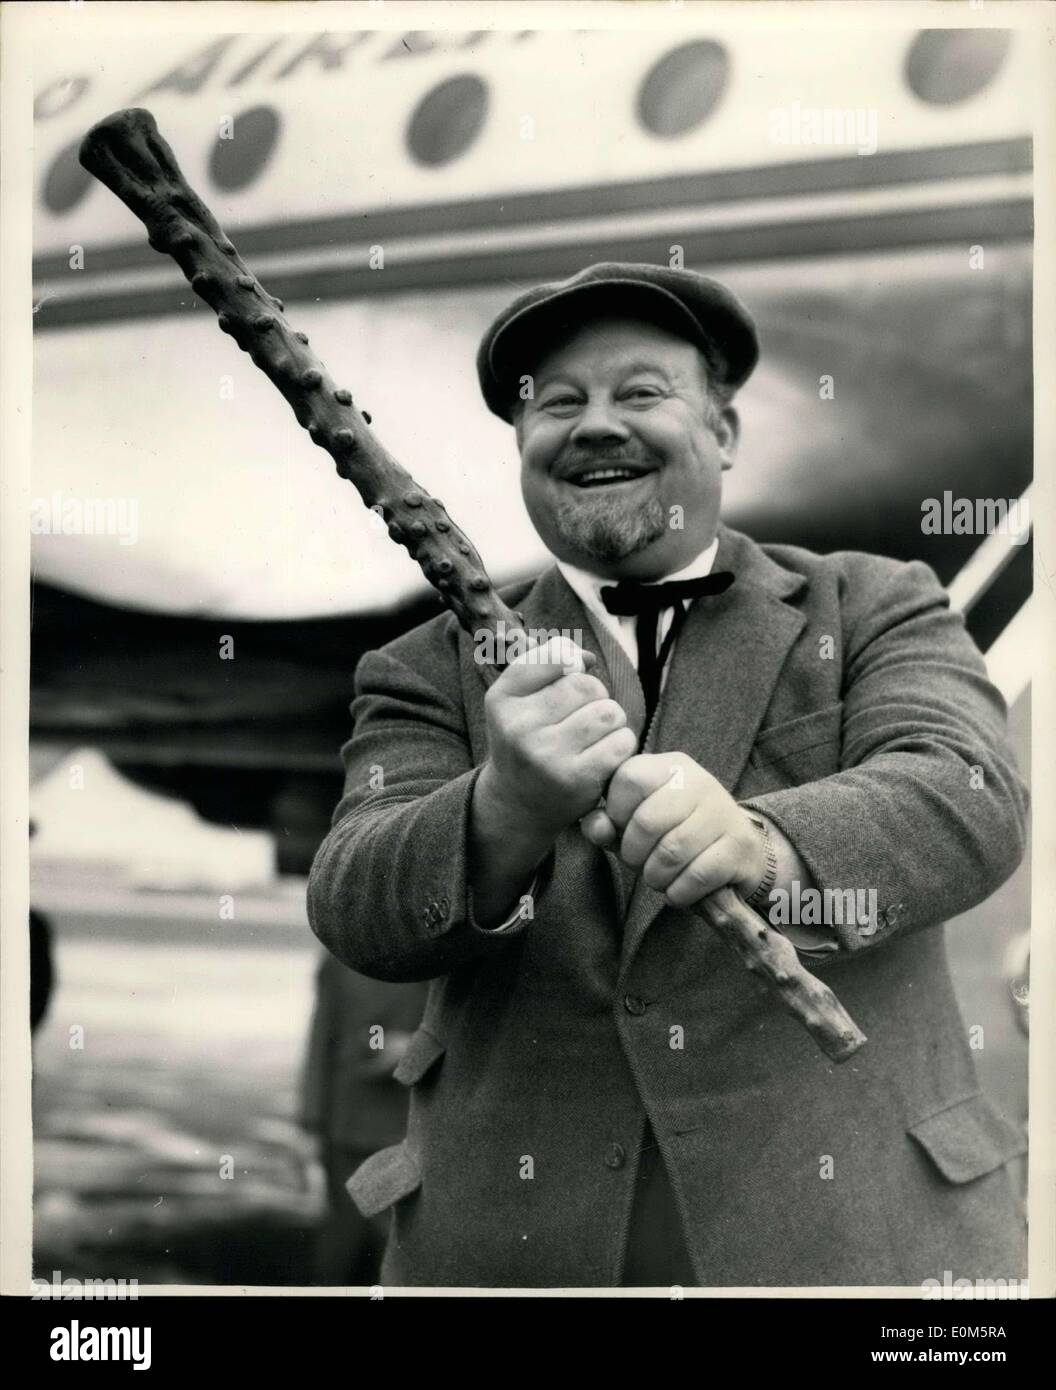 Aug. 29, 1953 - Burl Ives arrives in London by air; Bur Ives, the famous folk singer, arrived at London Airport this morning from Ireland. The new Burl Ives is two stone slimmer than his usual 22, but he must peel off another 4 stone from his mighty frame before shooting can begin on the new John Hustom film, in which he plays a 17th century minstrel. He is here to see his tailot so that his wardrobe can be altered to fit the new dimensions. He will leave London for New York onSept. 2nd - Stock Image